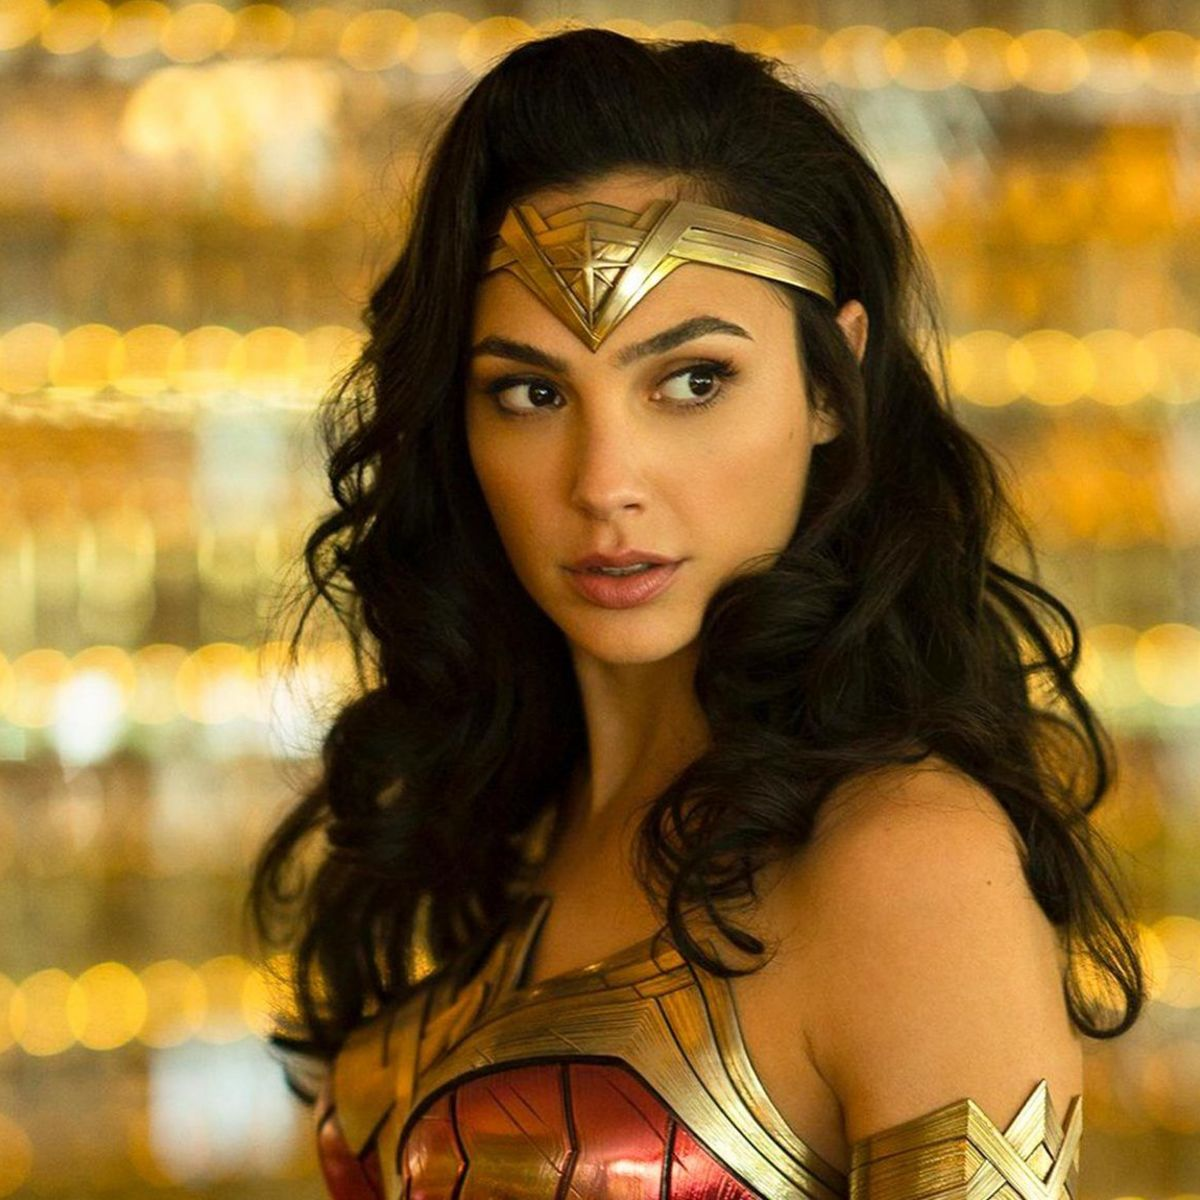 'Wonder Woman' sequel shelved until summer 2020